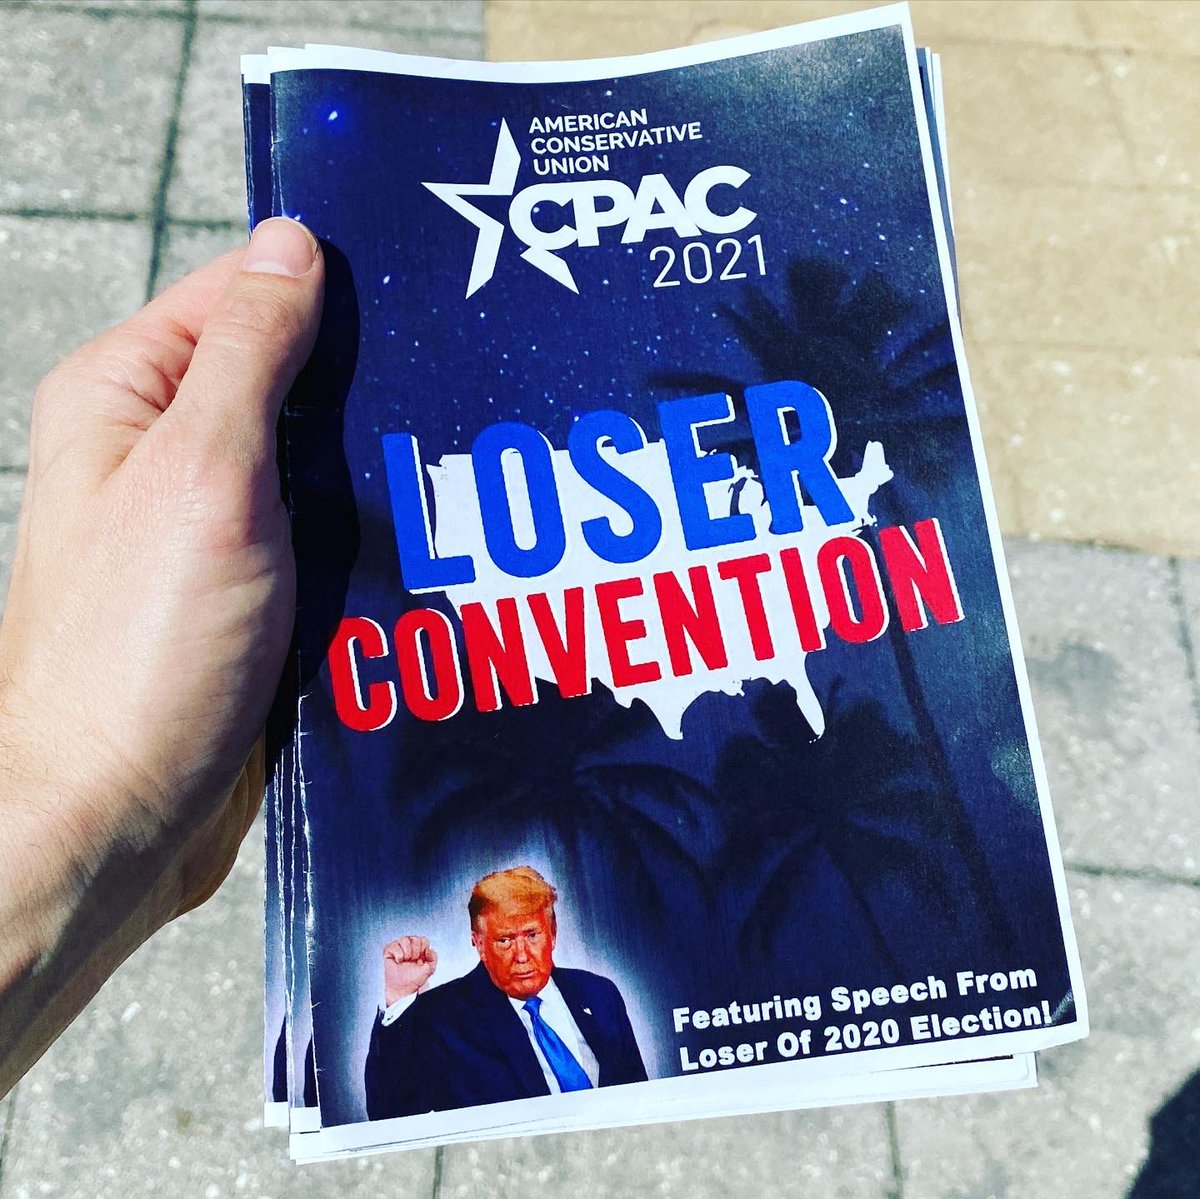 Replying to @TheGoodLiars: Handed out some honest programs at CPAC today.